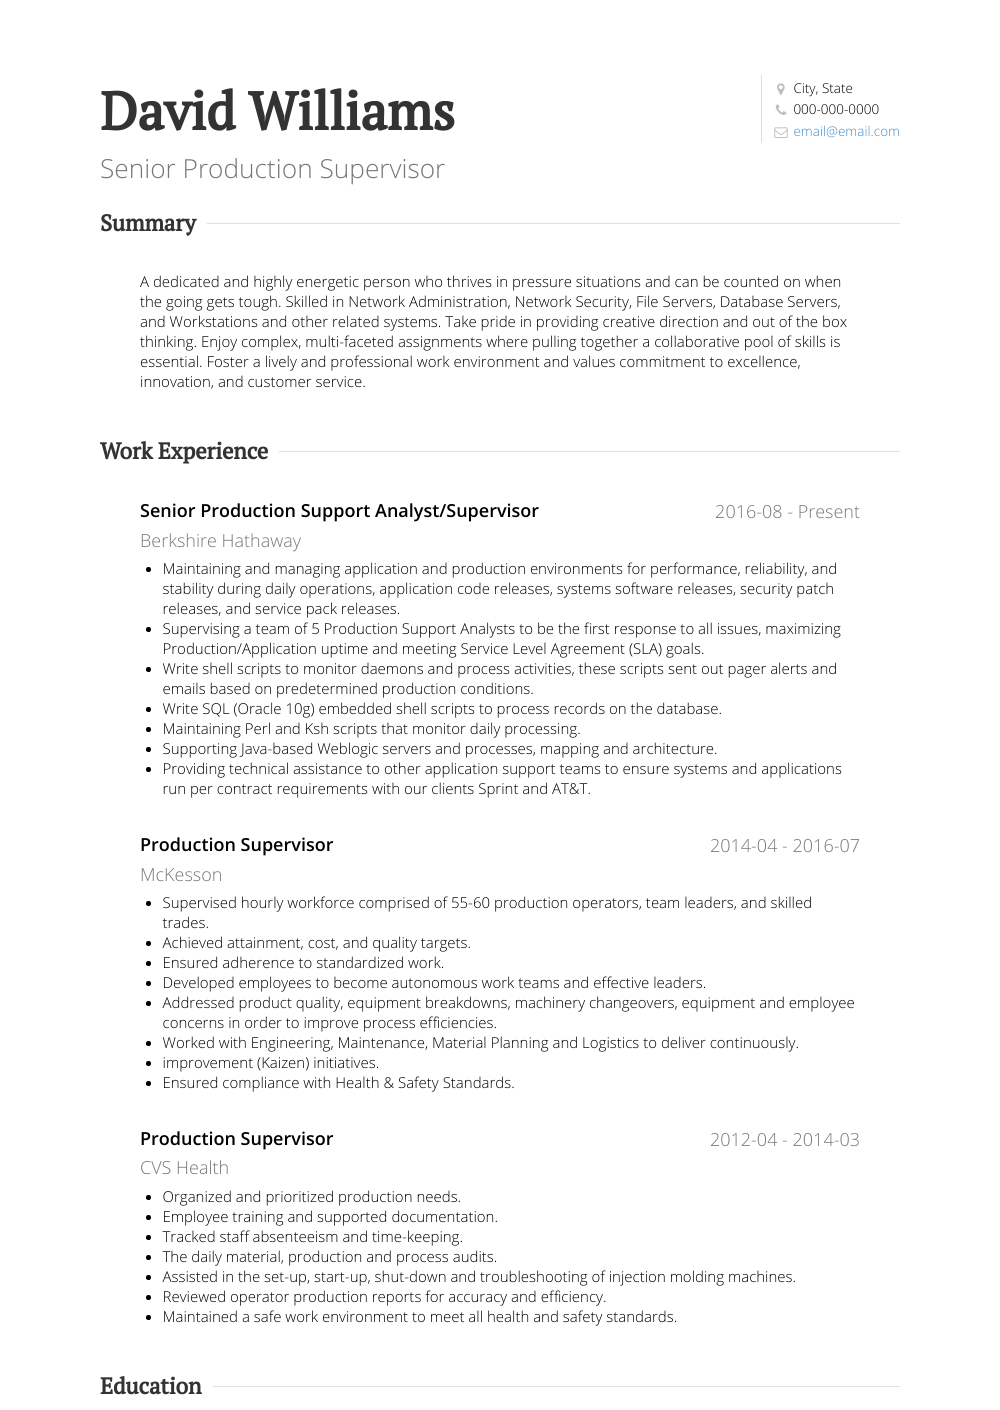 Senior Production Supervisor Resume Sample and Template